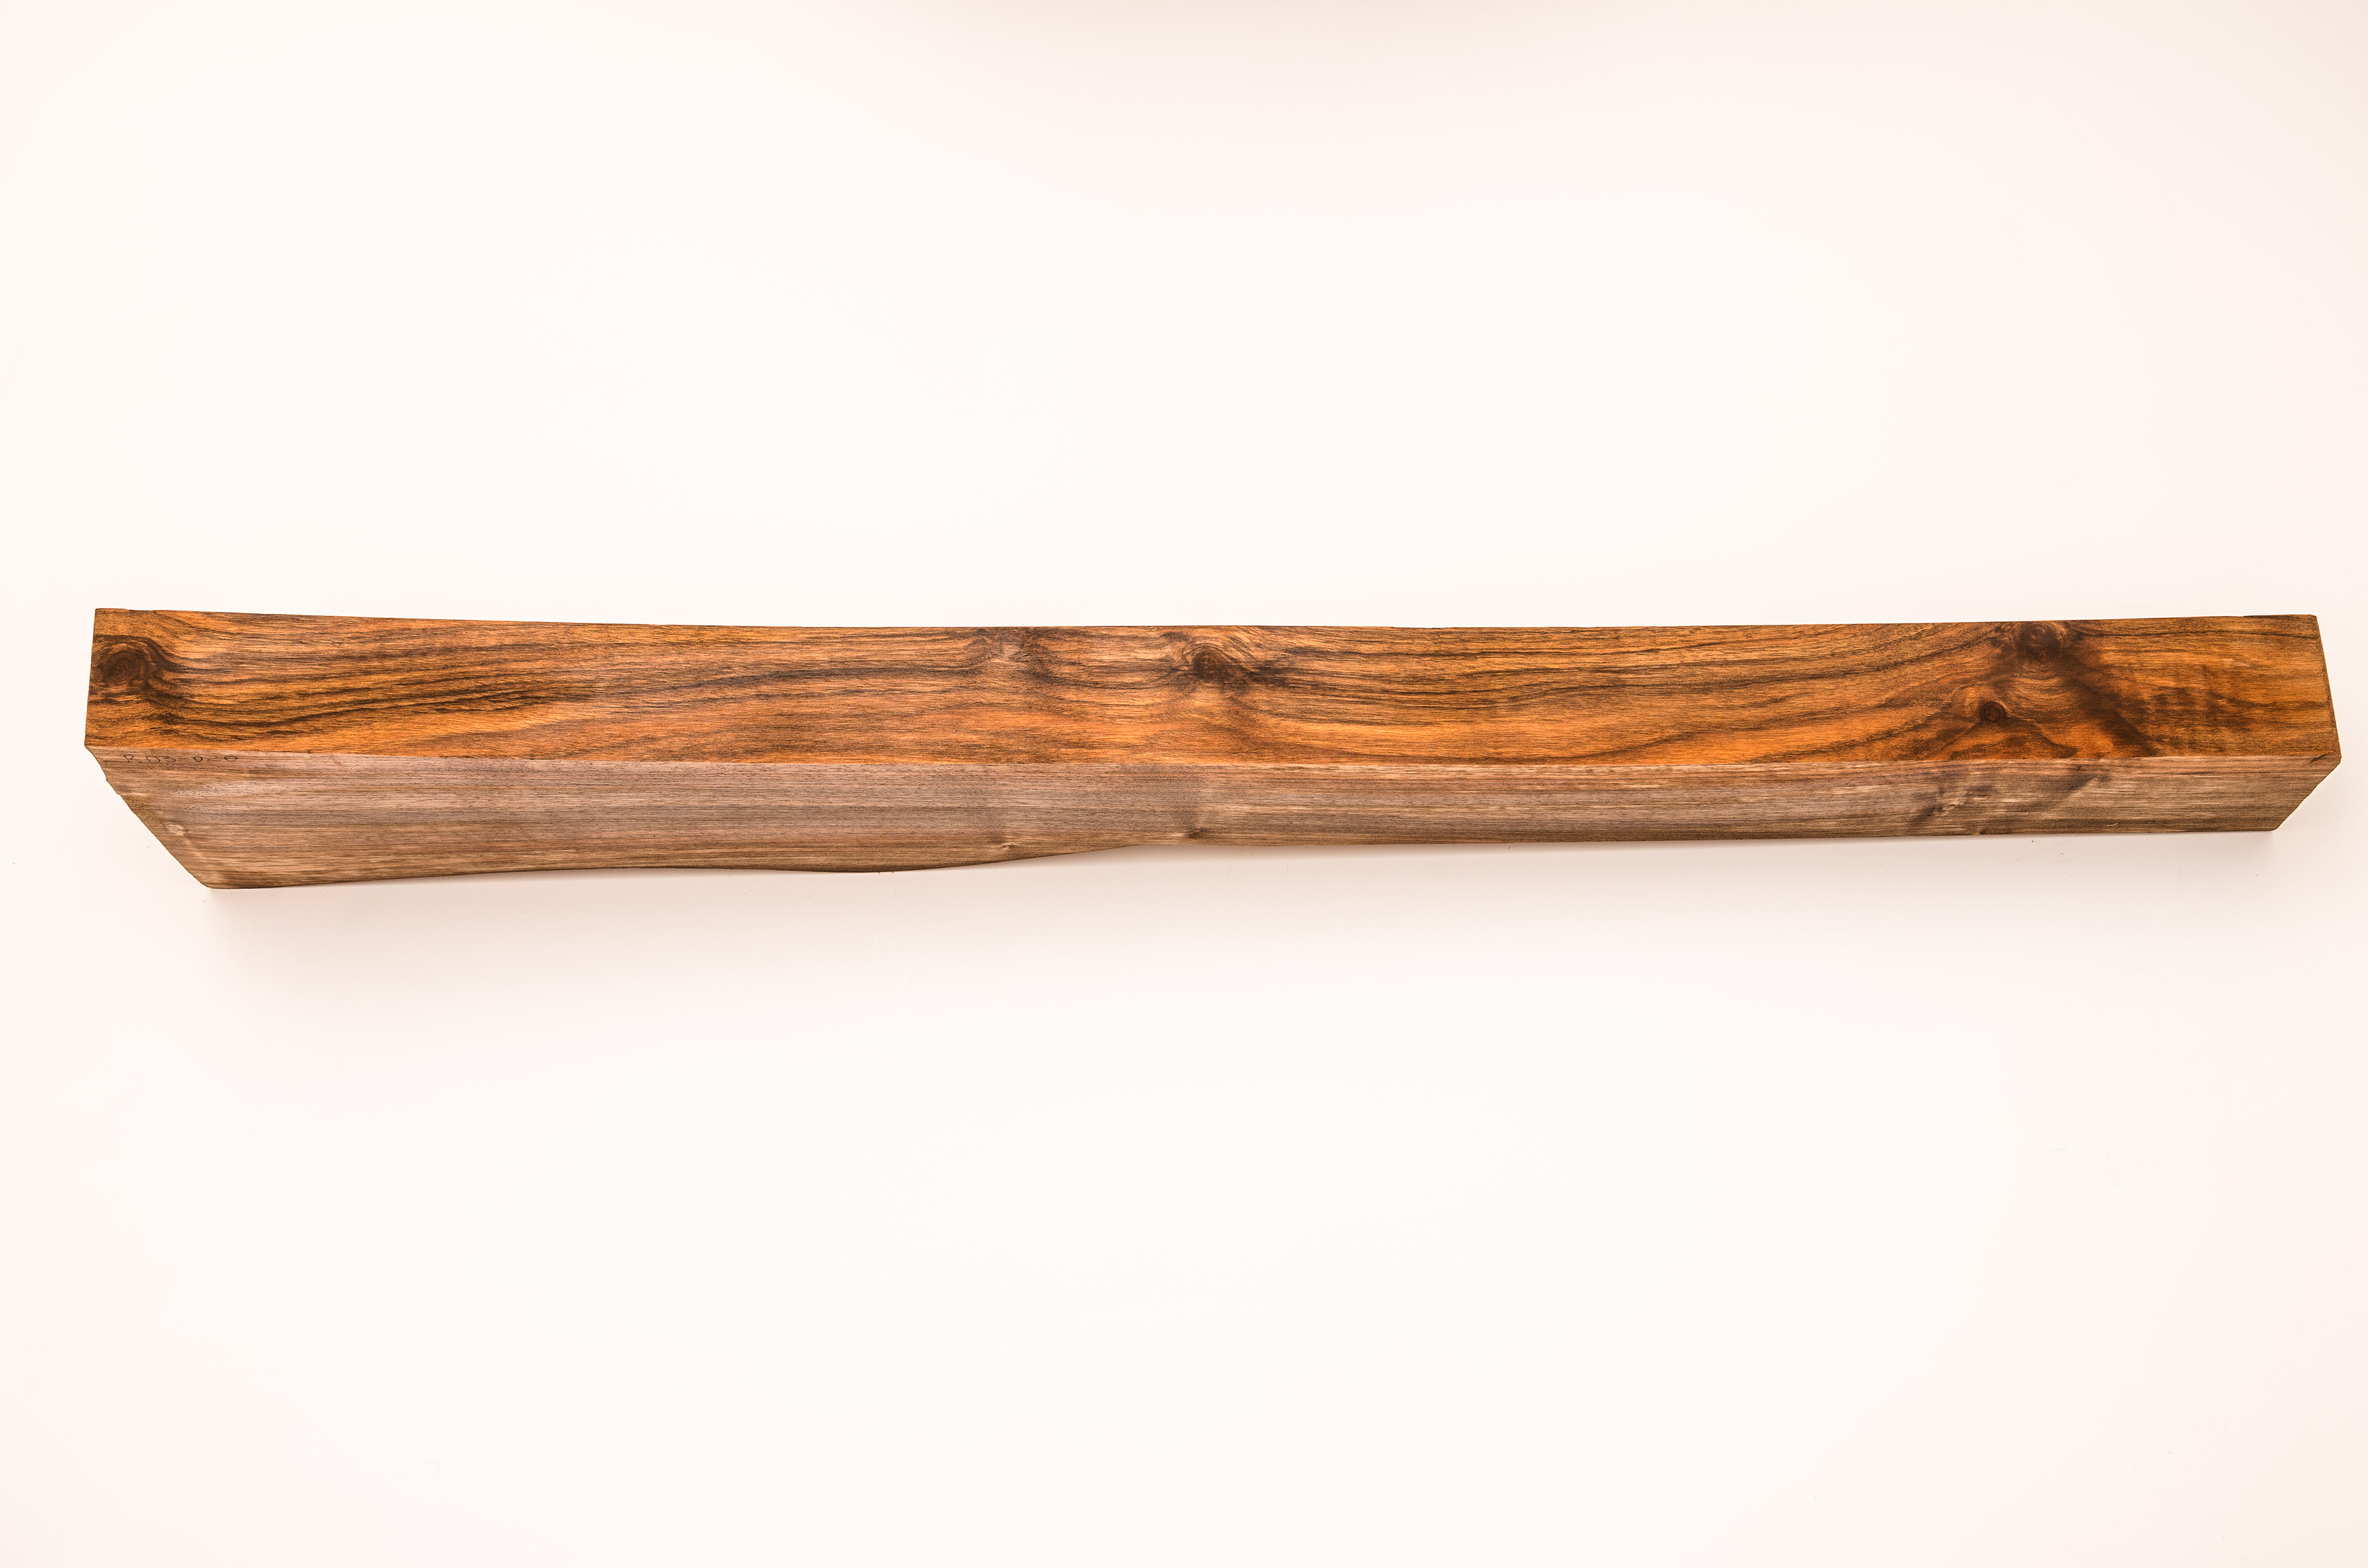 walnut_stock_blanks_for_guns_and_rifles-0899